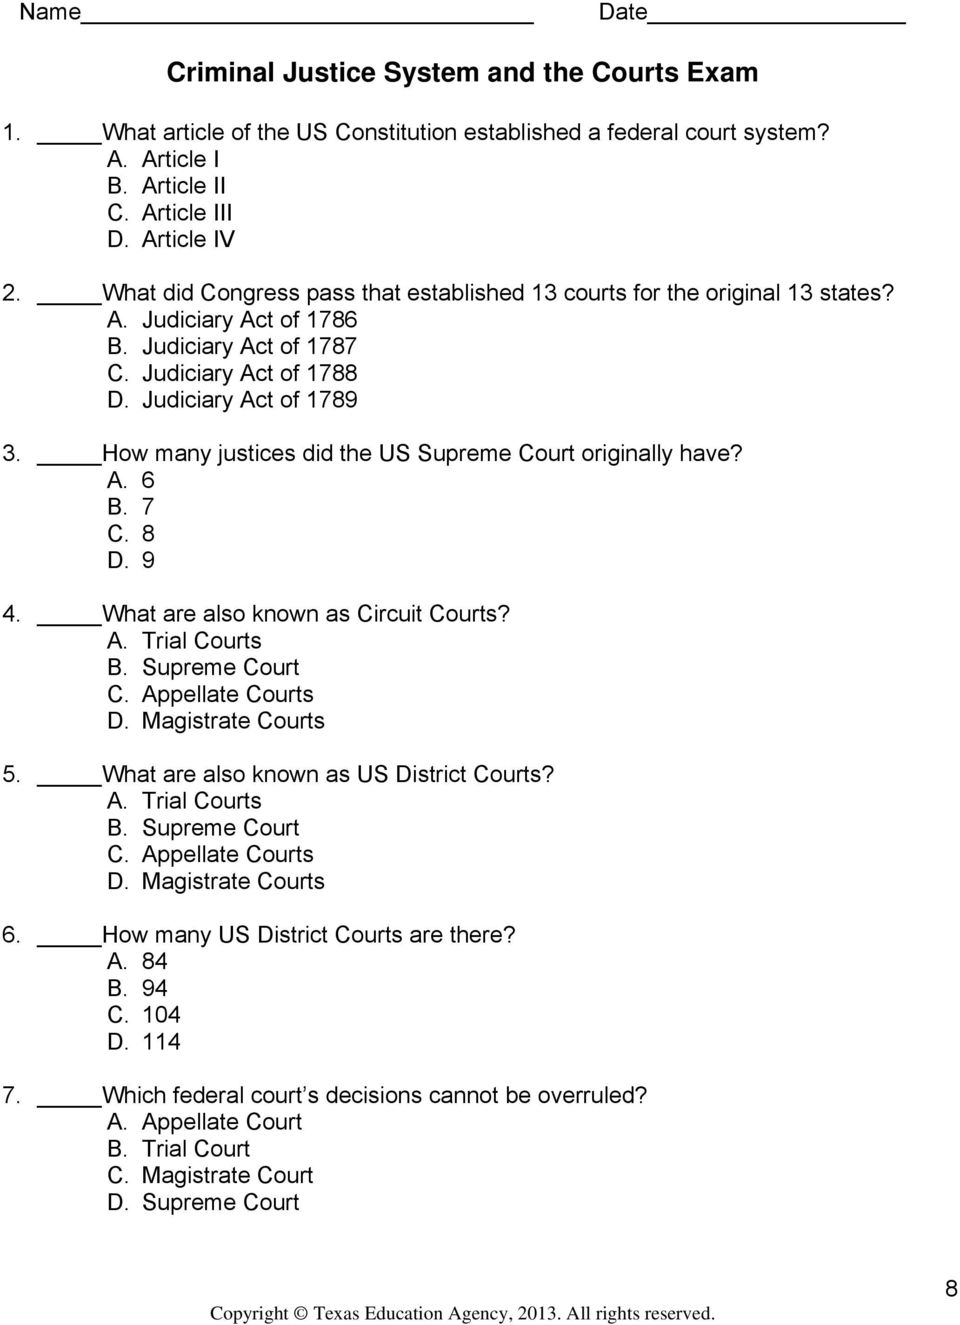 How many justices did the US Supreme Court originally have? A. 6 B. 7 C. 8 D. 9 4. What are also known as Circuit Courts? A. Trial Courts B. Supreme Court C. Appellate Courts D. Magistrate Courts 5.